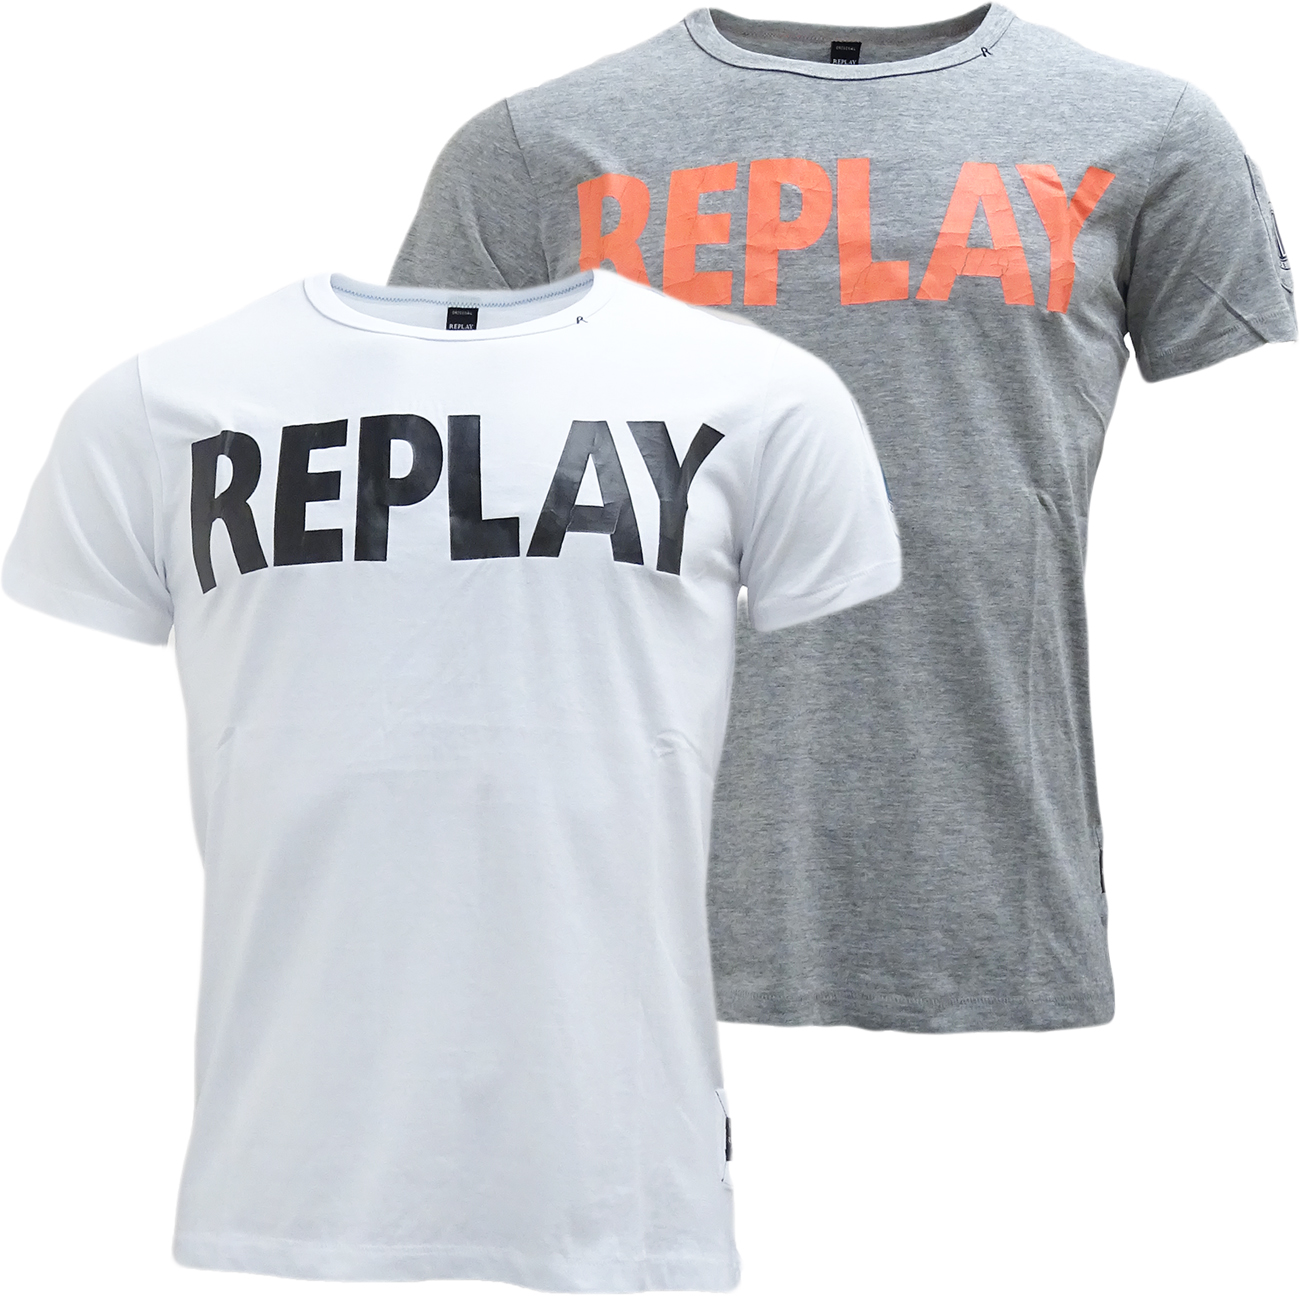 replay t shirt with cracked effect logo t shirts mr h menswear. Black Bedroom Furniture Sets. Home Design Ideas